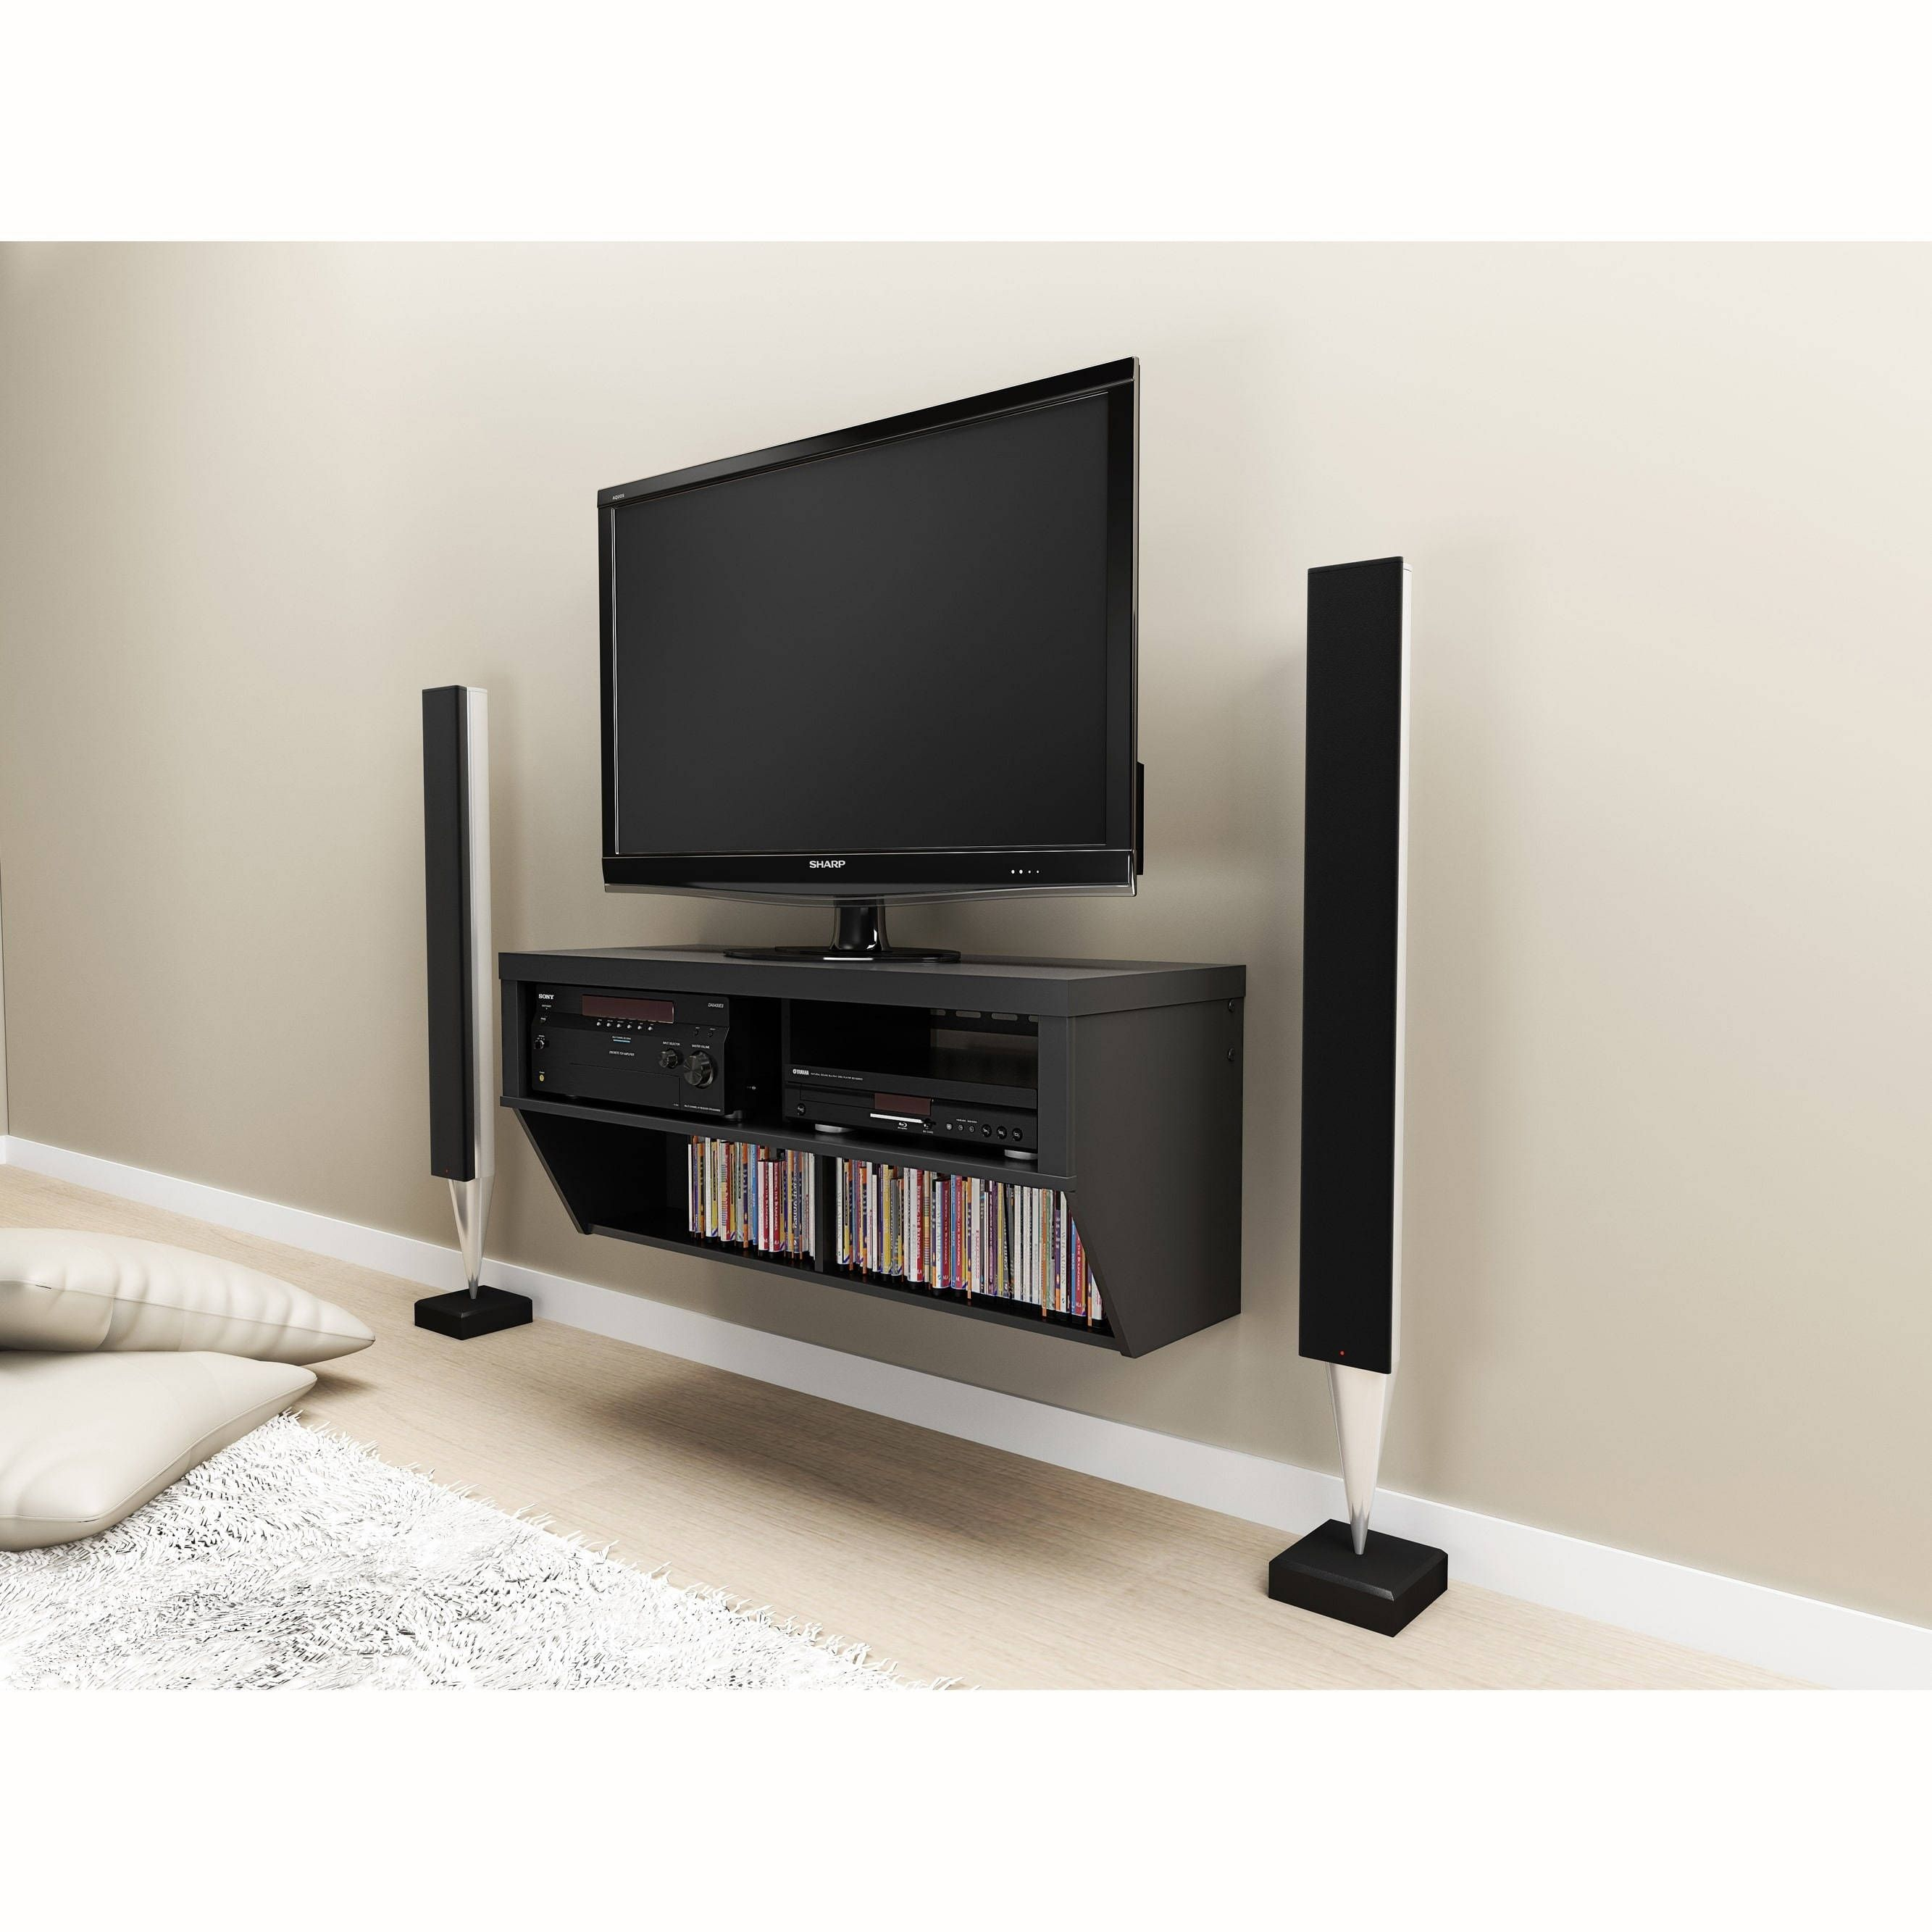 Prepac Valhalla Designer Collection Black 42 Inch Wide Wall Mounted AV  Console (Black 42 Wide Wall Mounted AV Console)